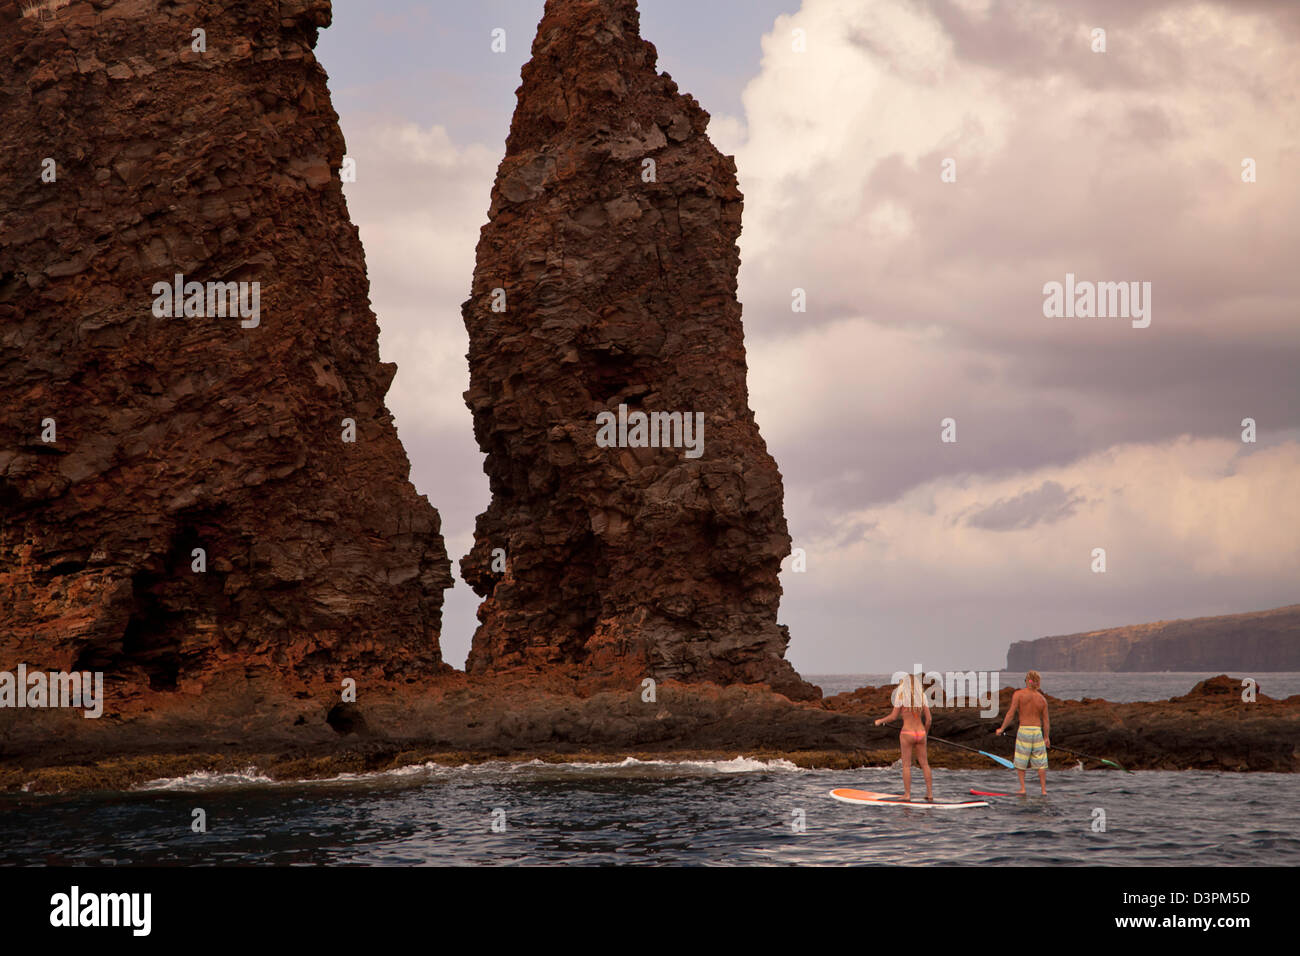 A couple on stand-up paddle boards at Needles off the island of Lanai, Hawaii. Both are model released. - Stock Image